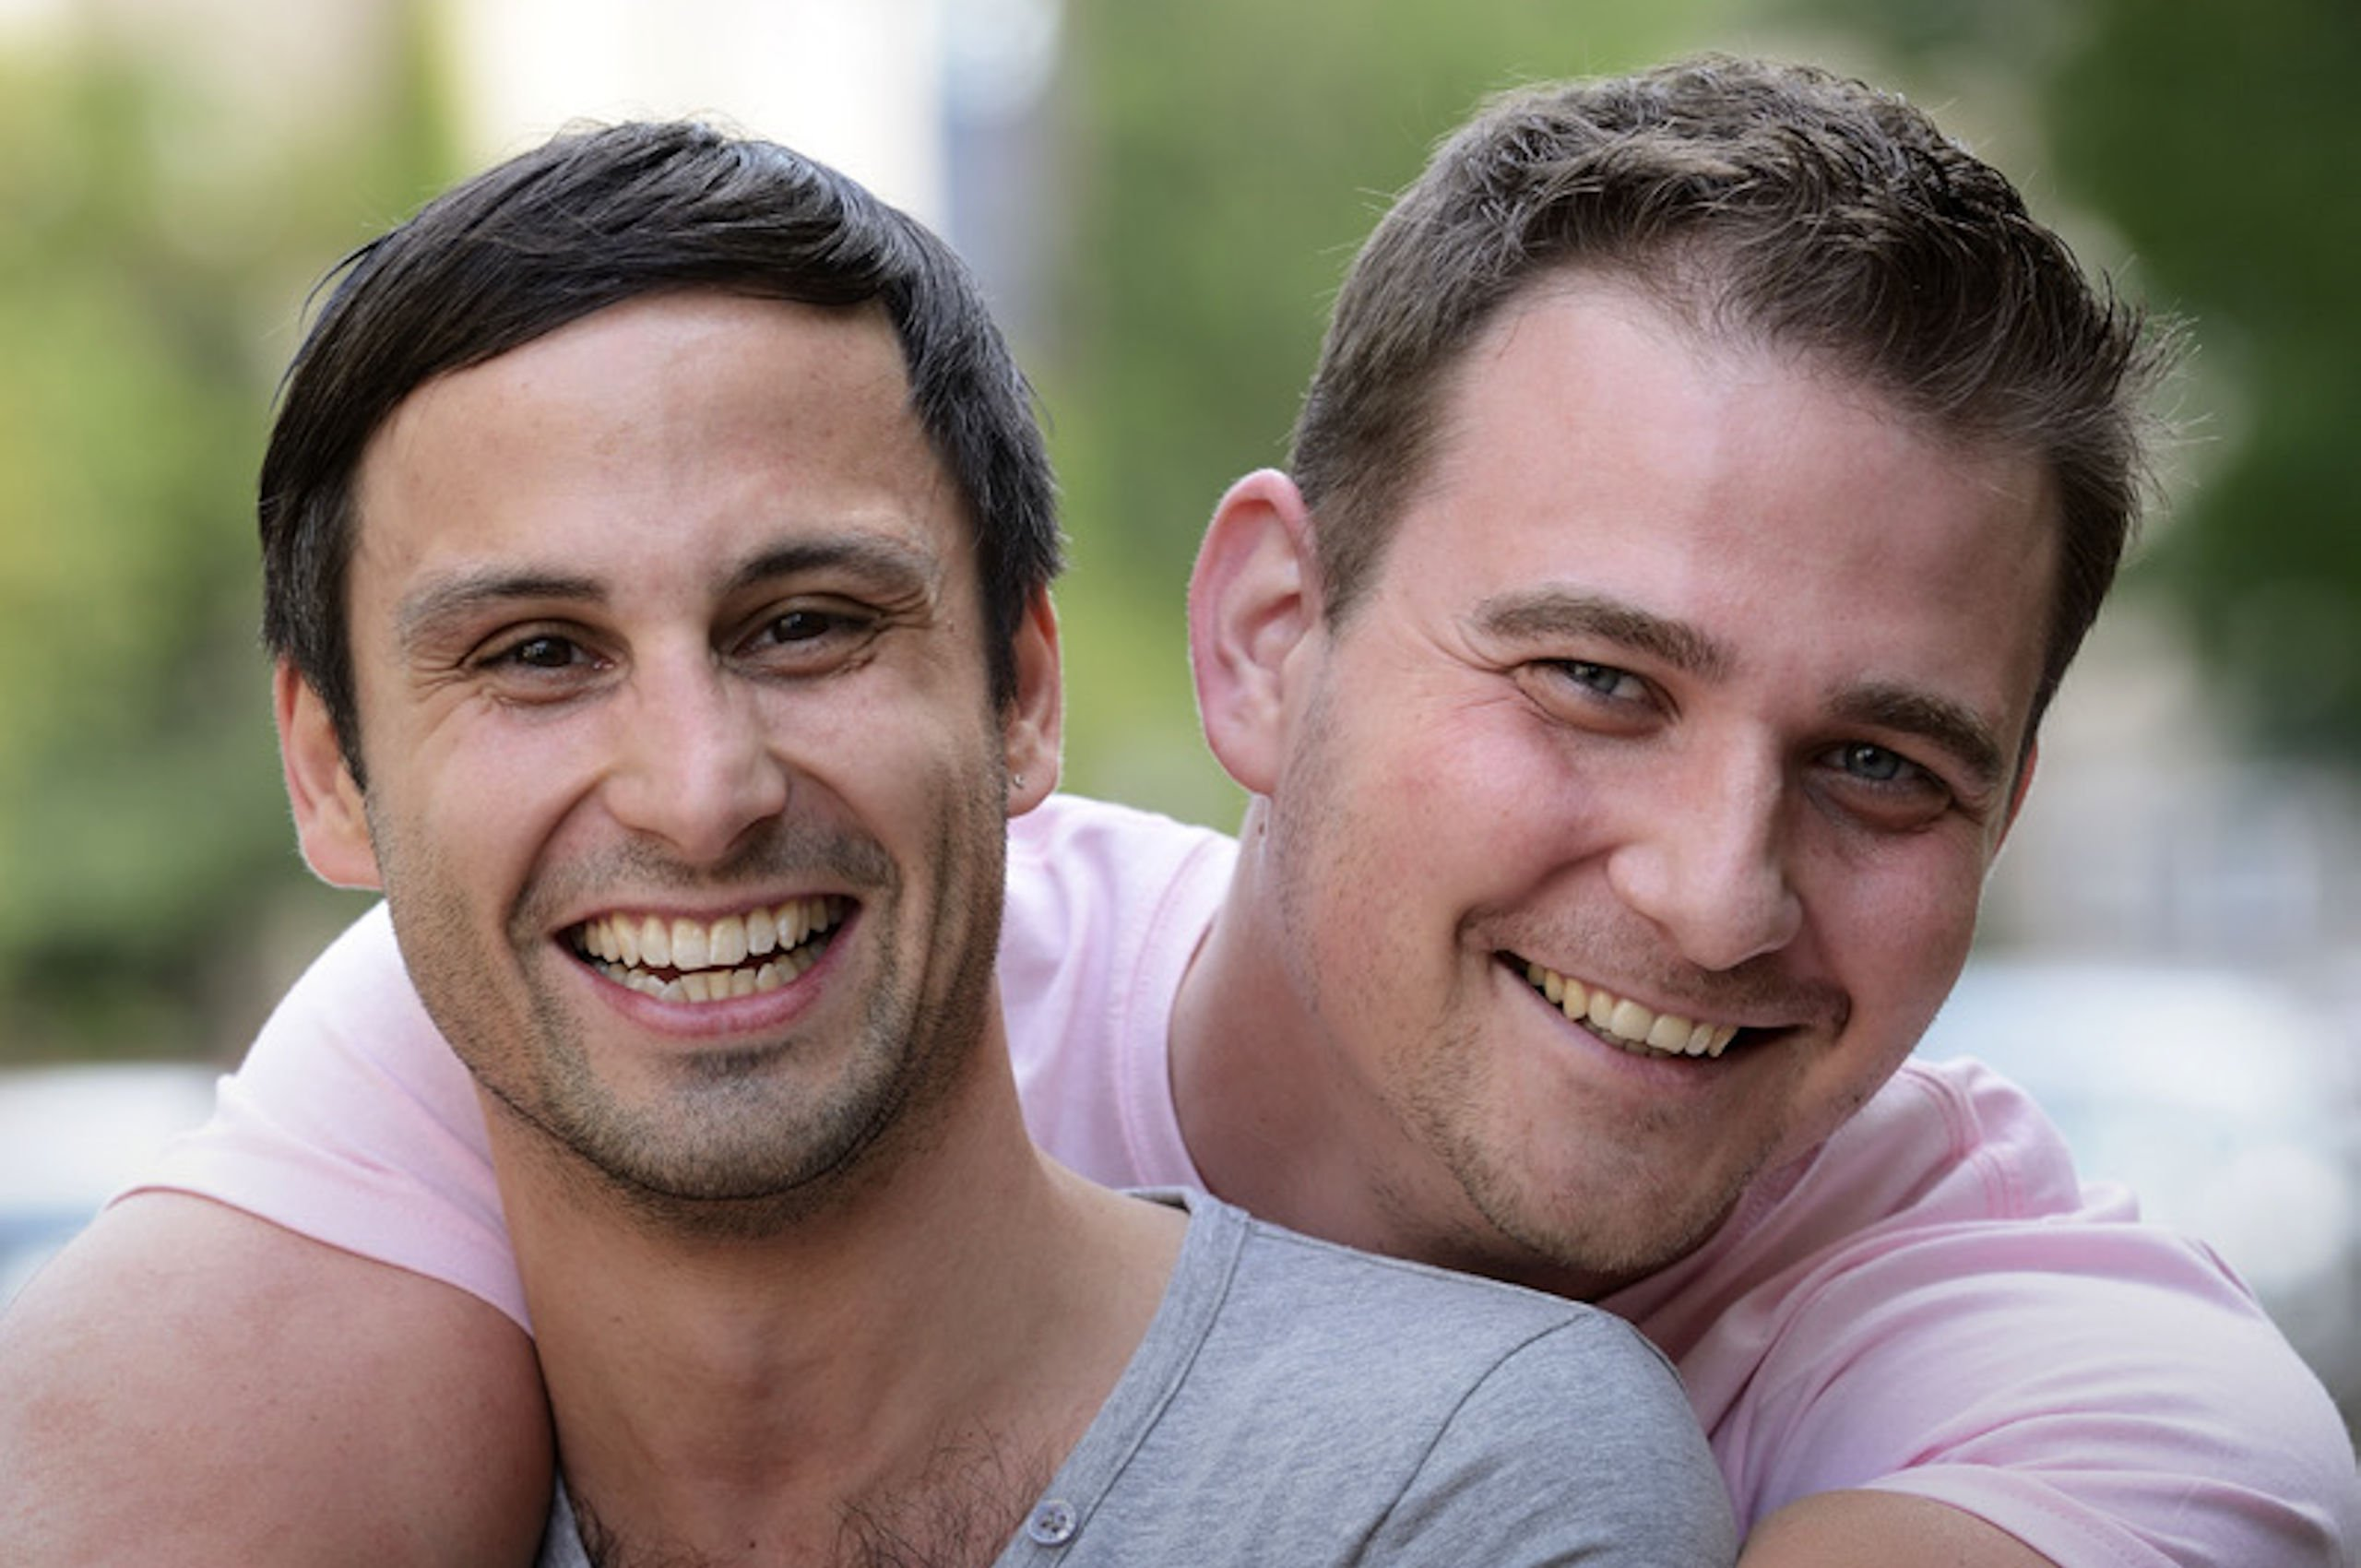 Two masculine people hugging, smiling and looking at the camera